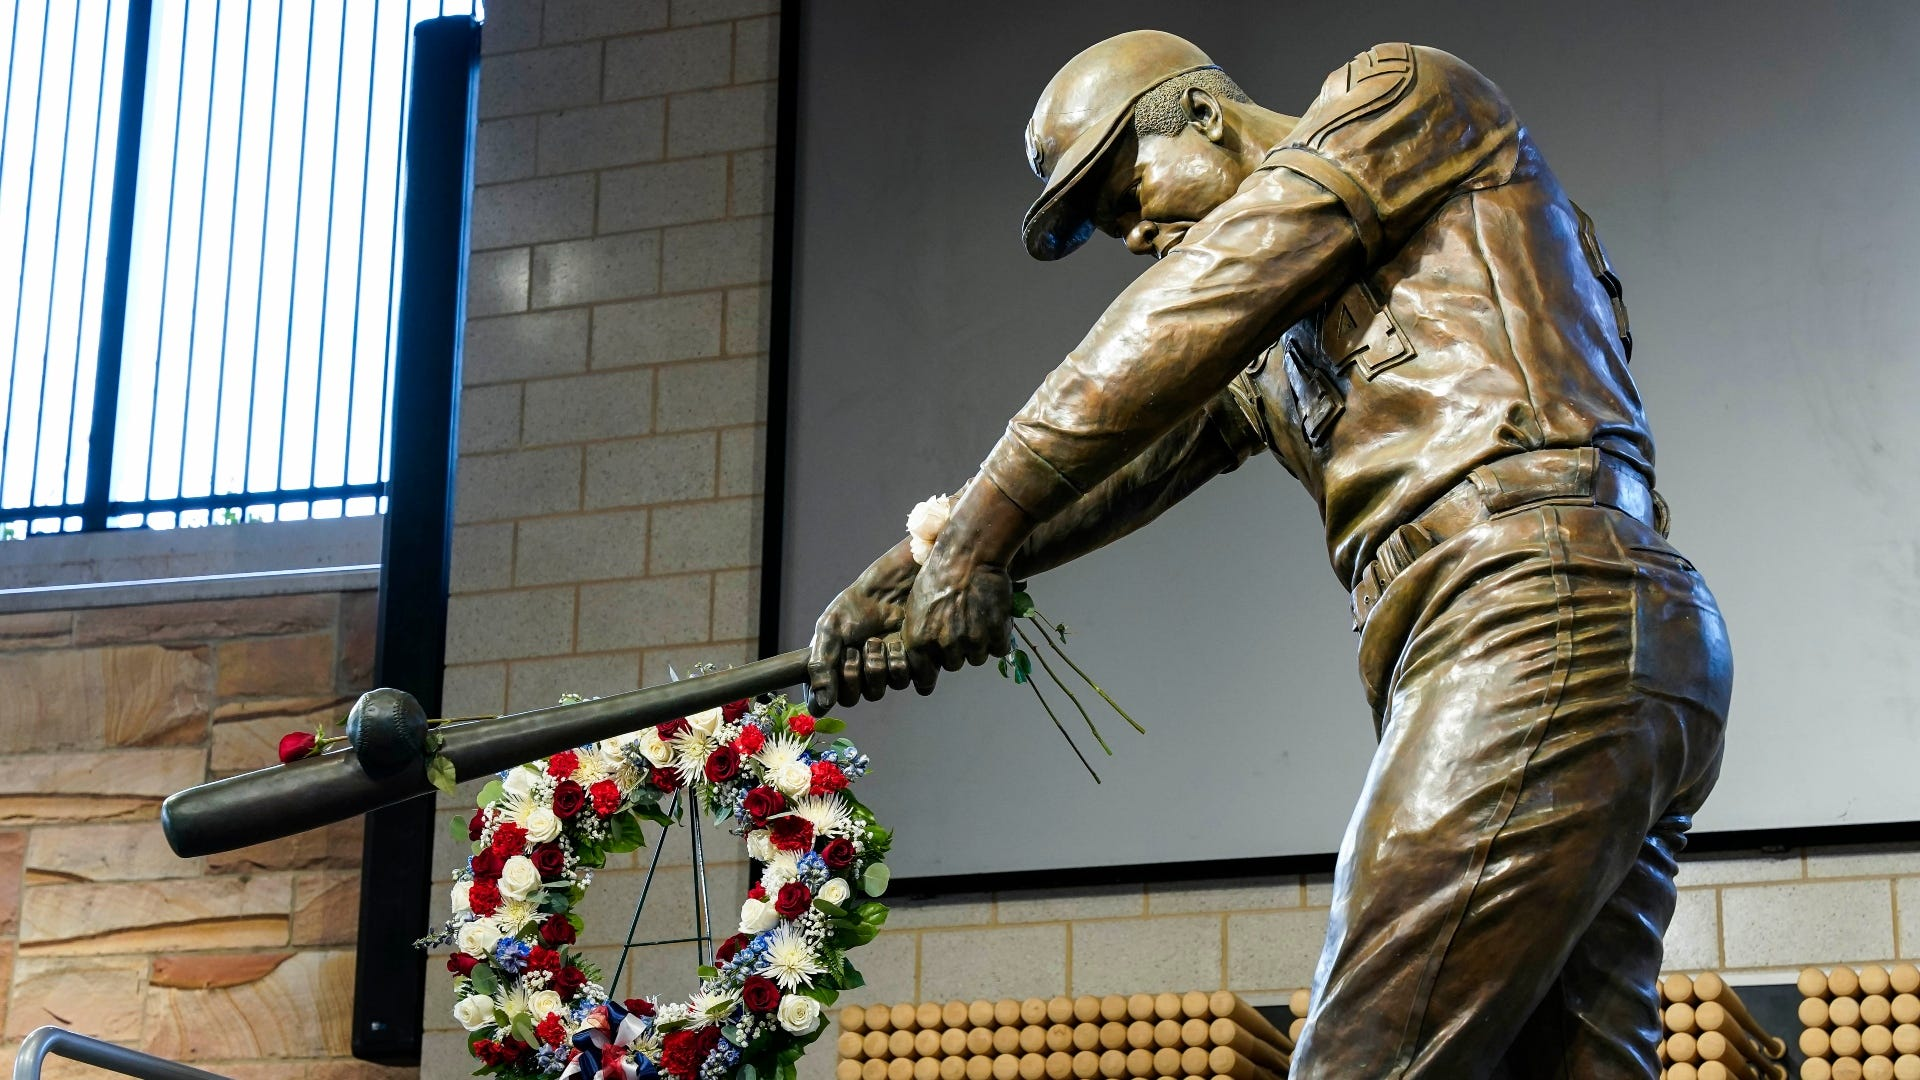 Braves legend Hank Aaron's death leads to suggestions of renaming team, stadium in his honor